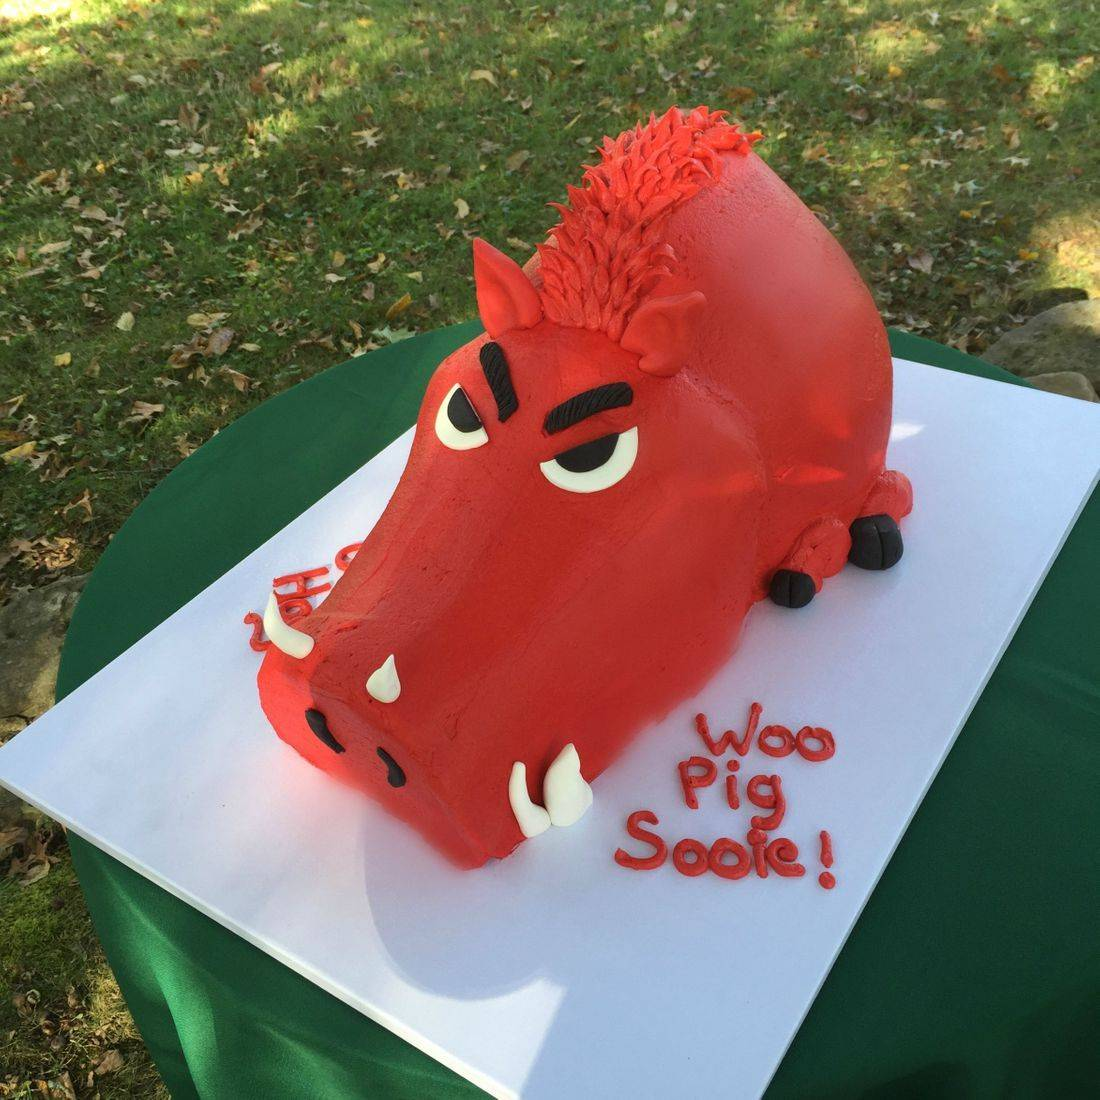 chocolate buttercream  grooms cake woo pig sooie cake Arkansas football cake